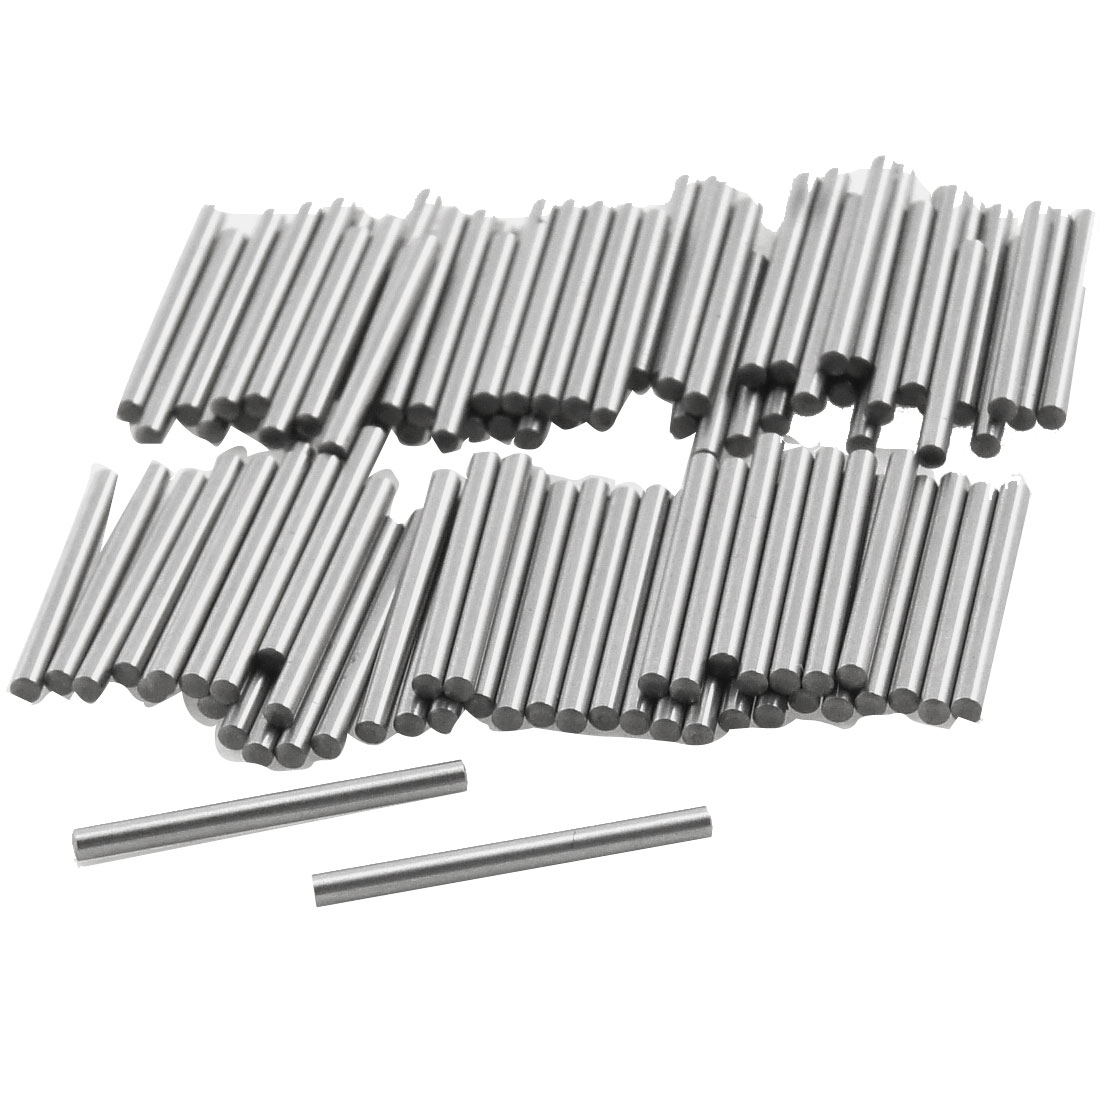 100 Pcs Metal 1.3mm x 15.8mm Dowel Pins Fasten Elements